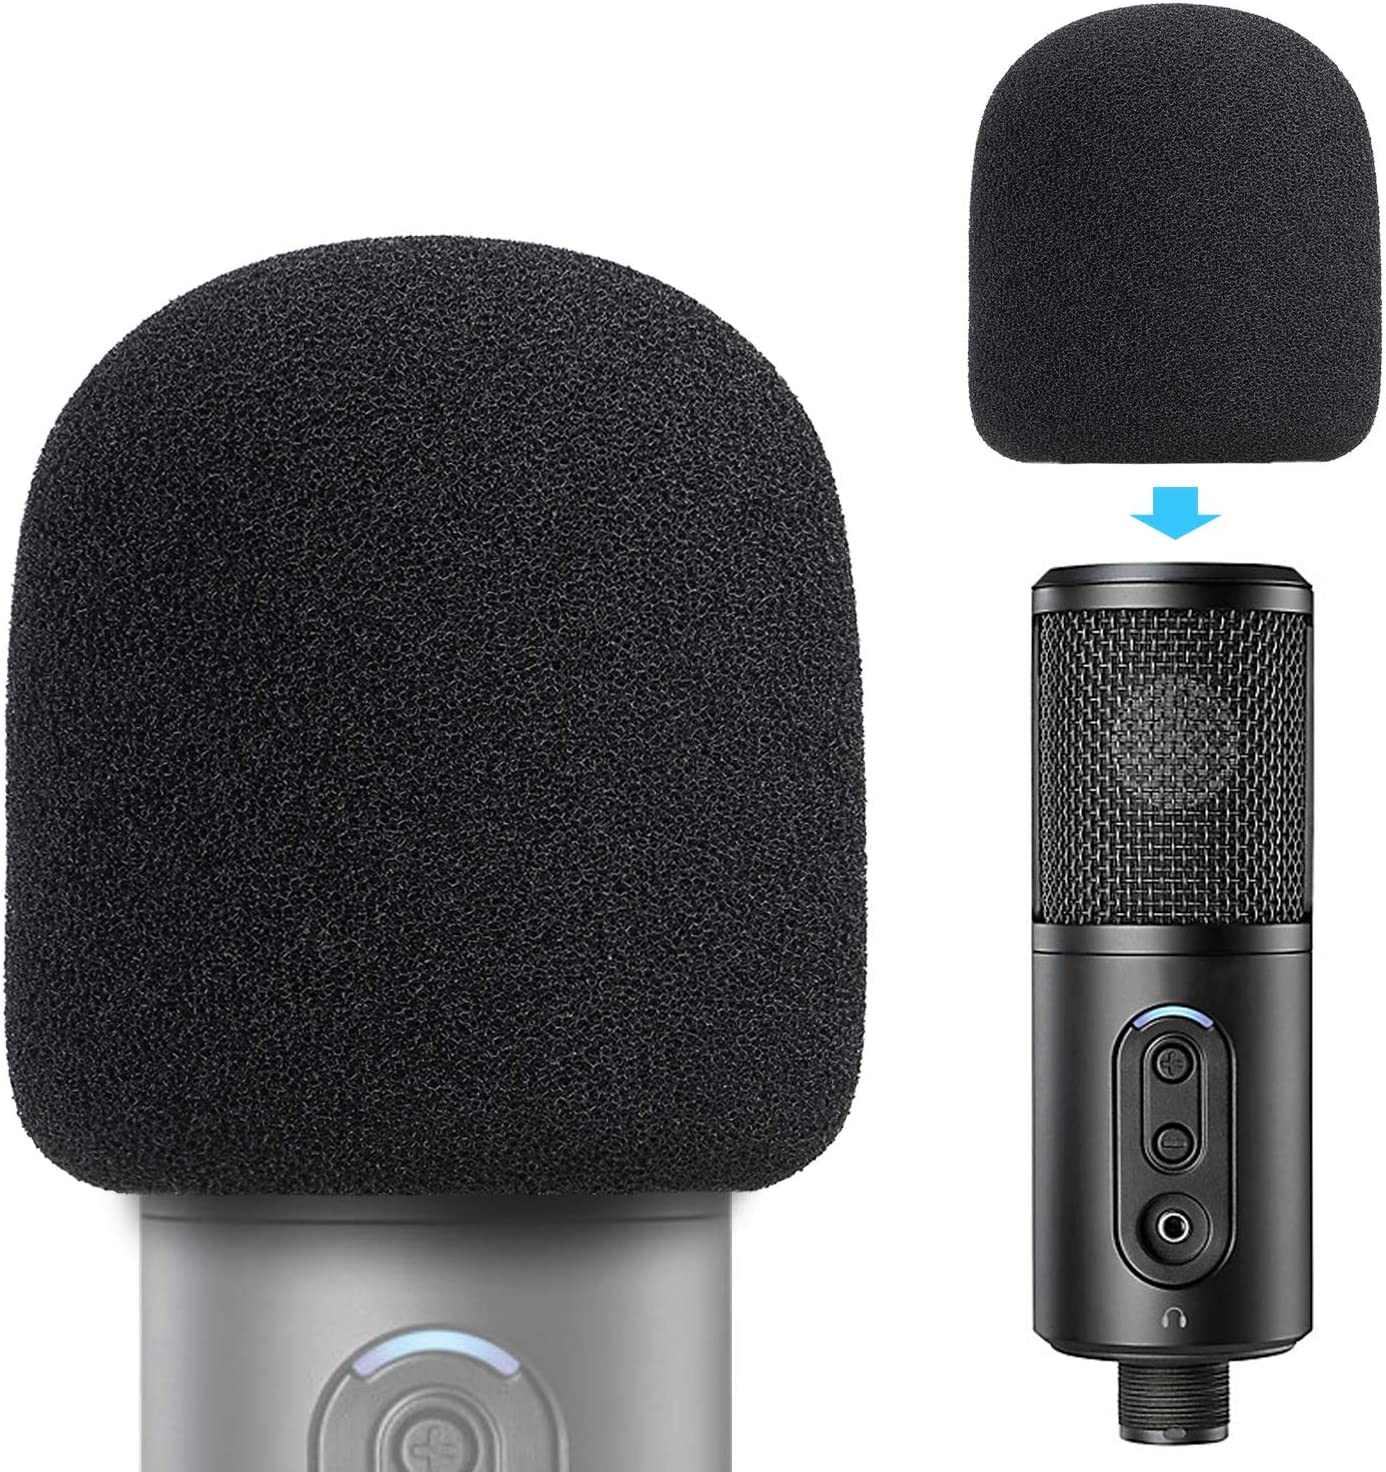 ATR2500x Pop Filter Foam Cover Max 85% OFF - Fort Worth Mall Mic A Windscreen for Customized